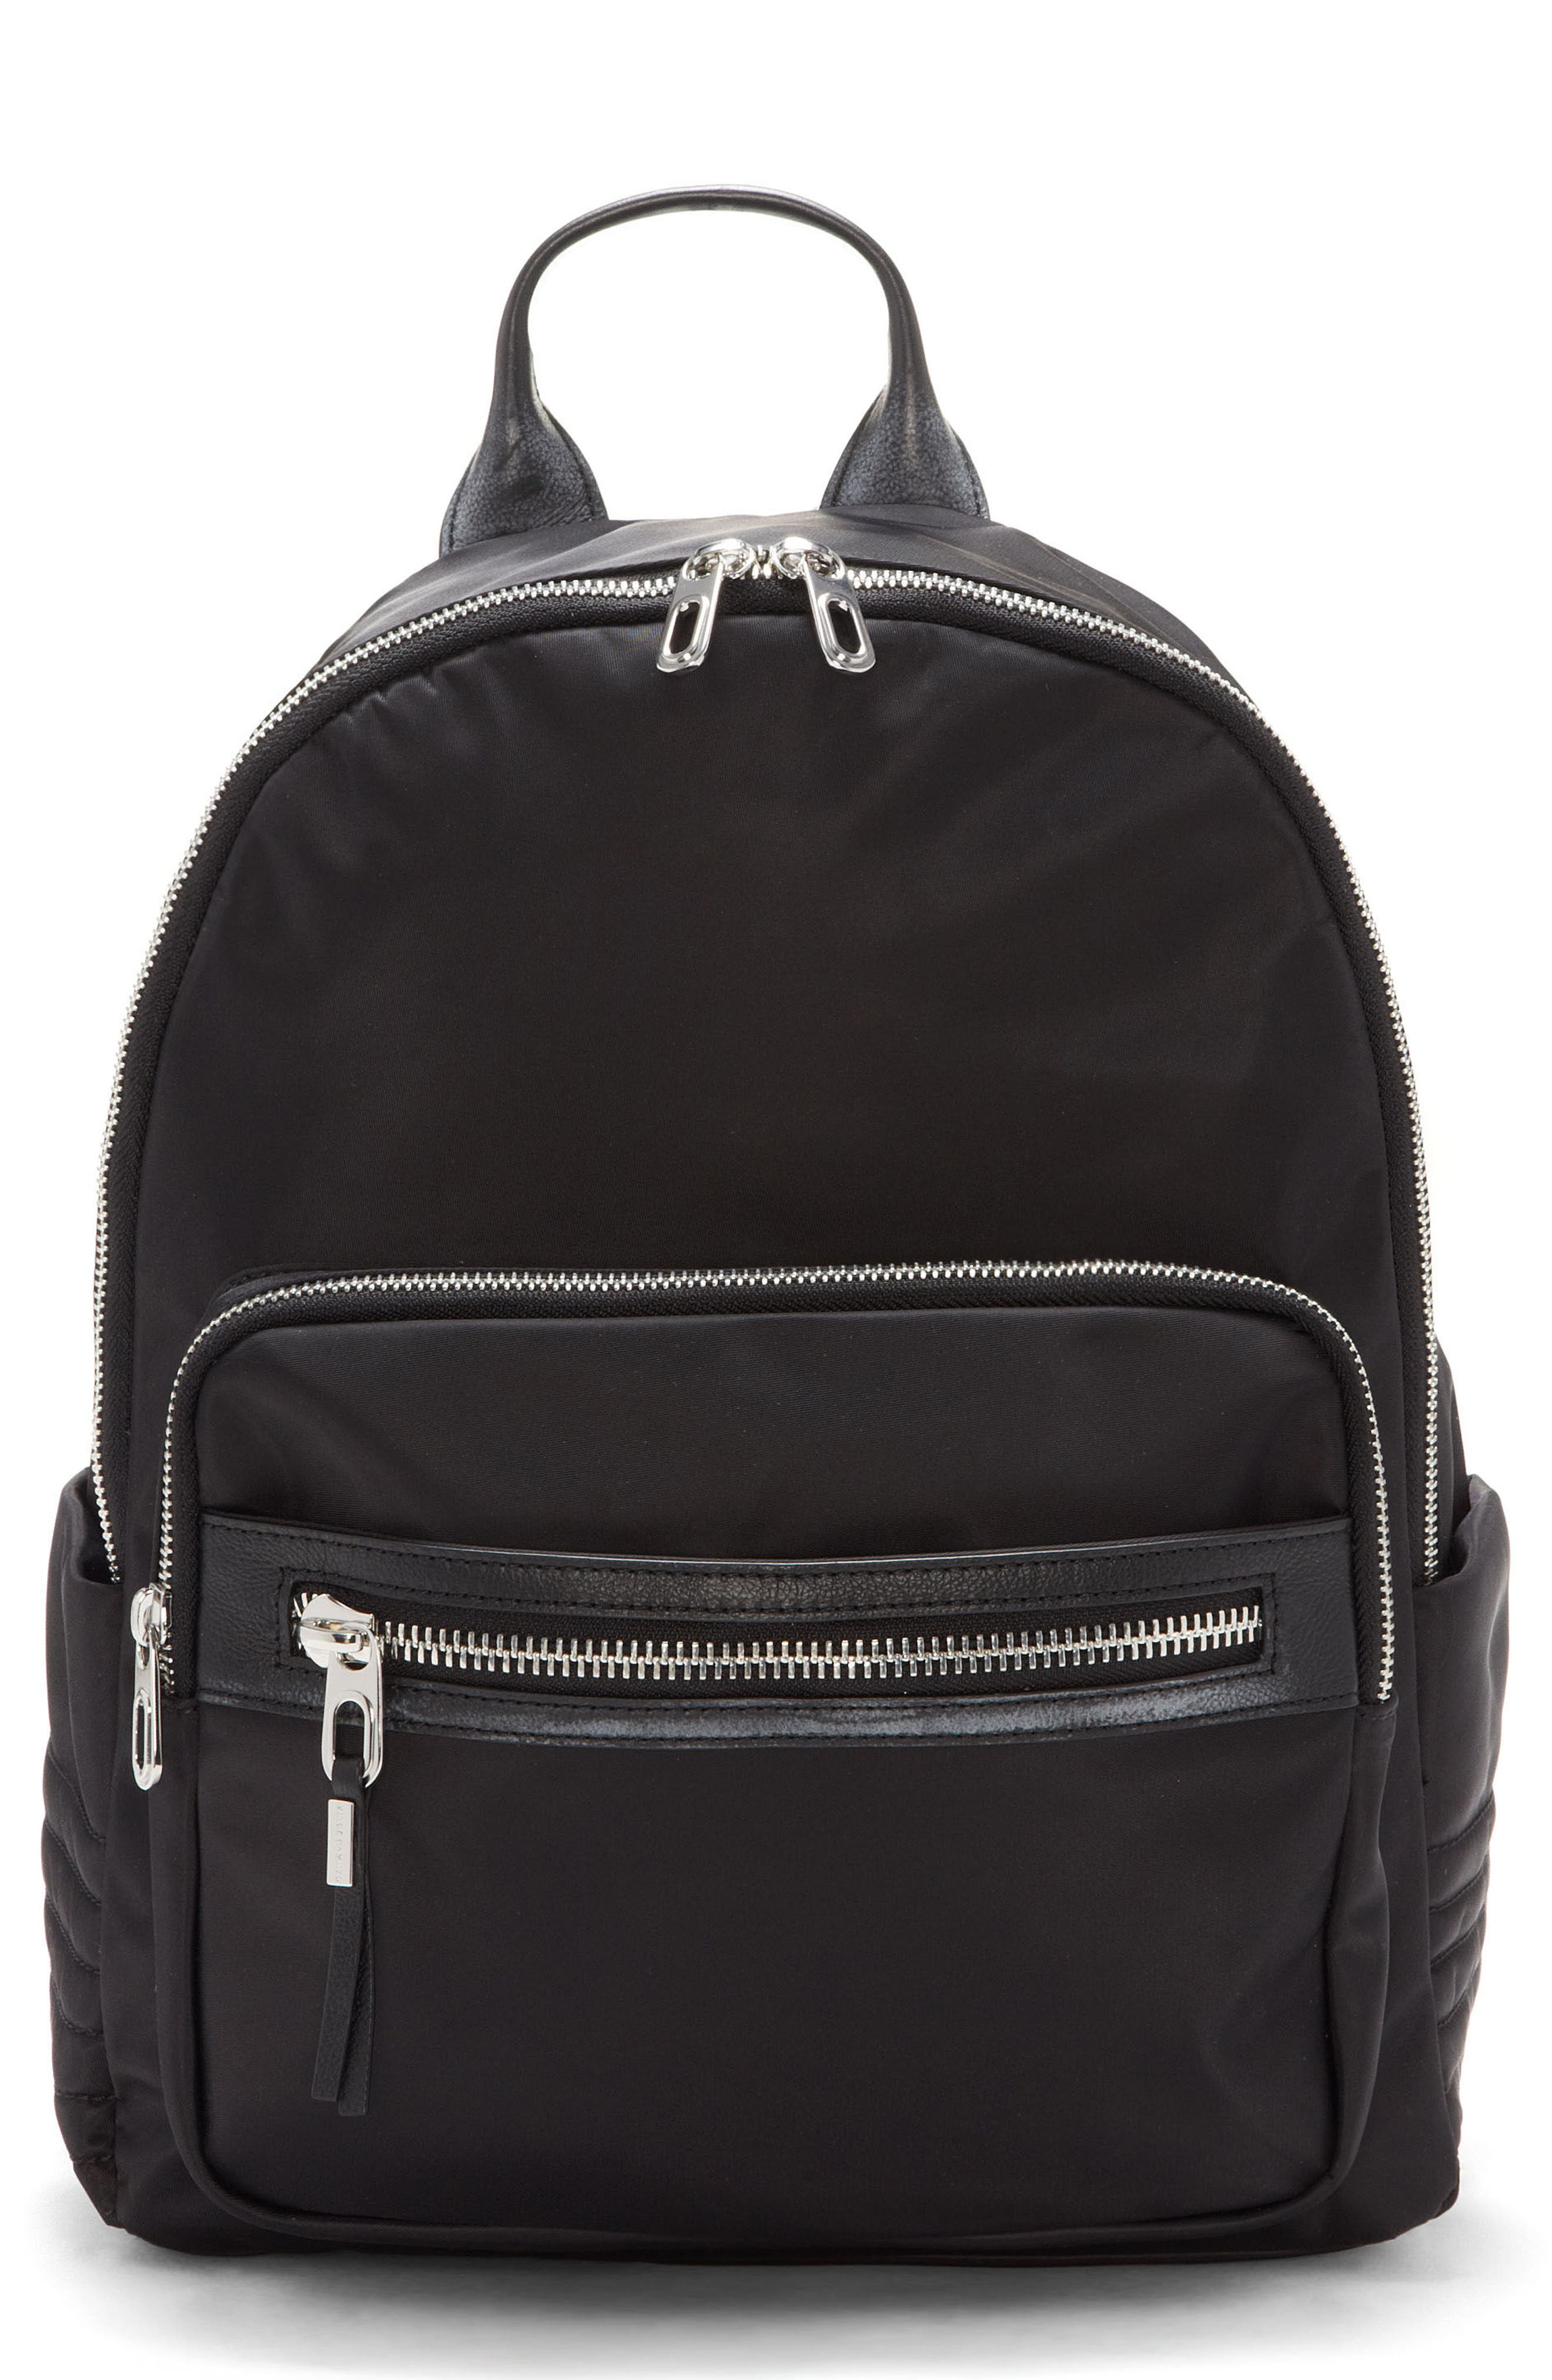 Action Nylon Backpack,                             Main thumbnail 1, color,                             001